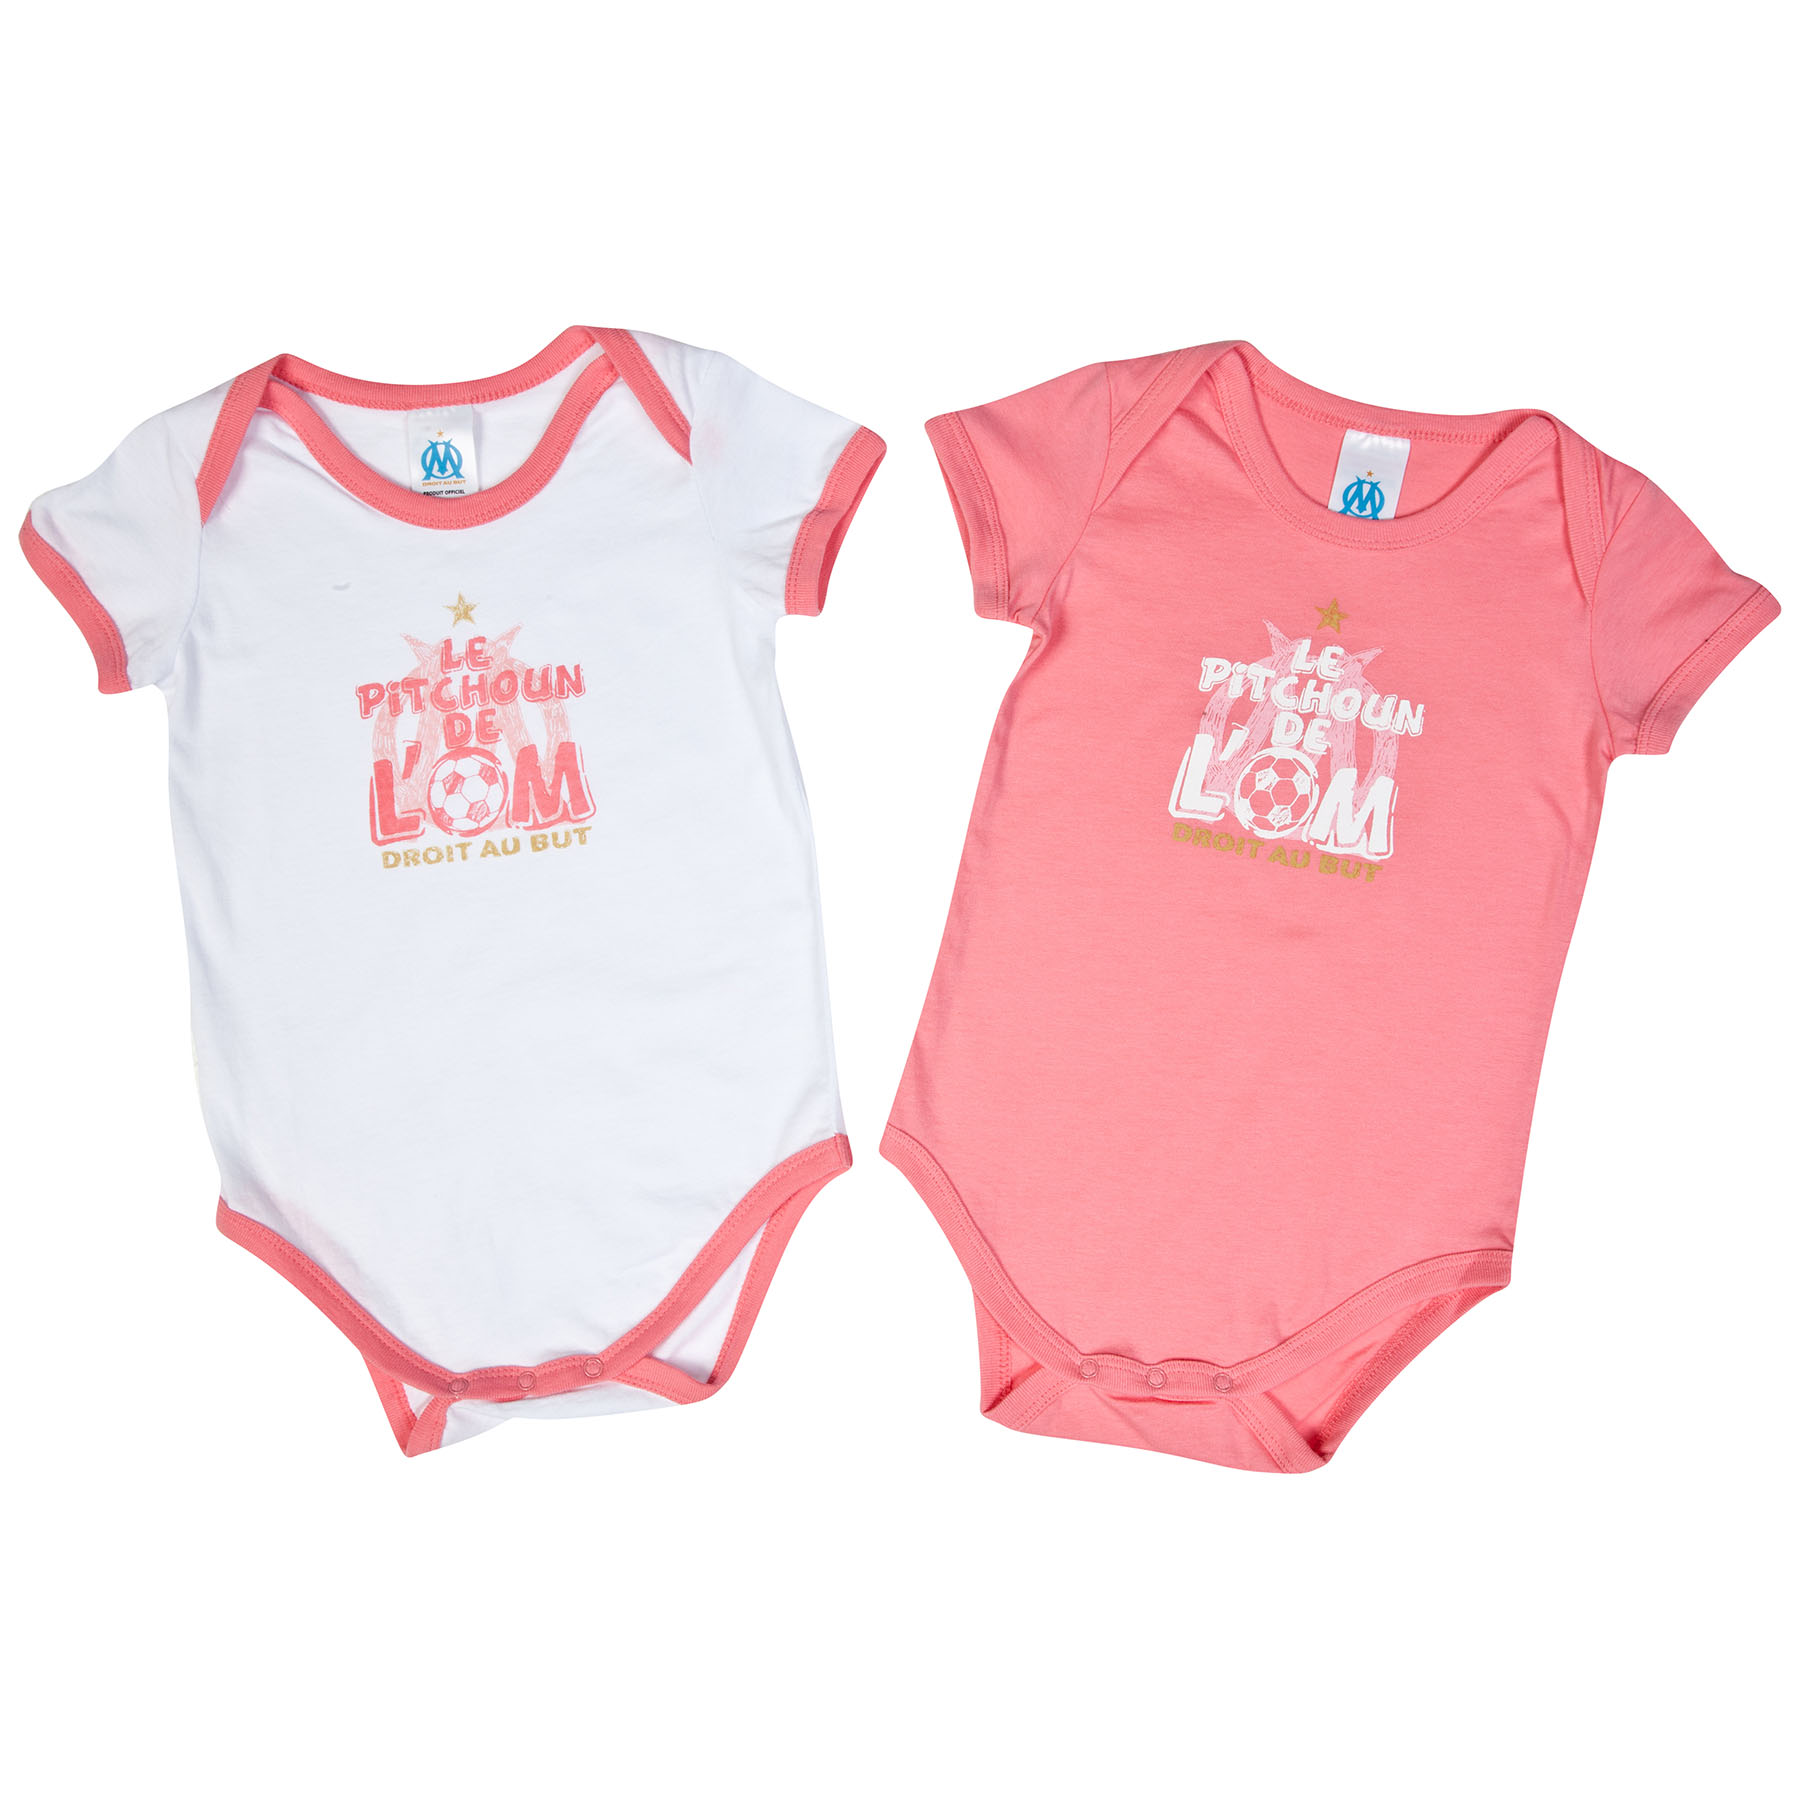 Olympique de Marseille 2 PK Bodysuits - Pink/White - Baby Girls